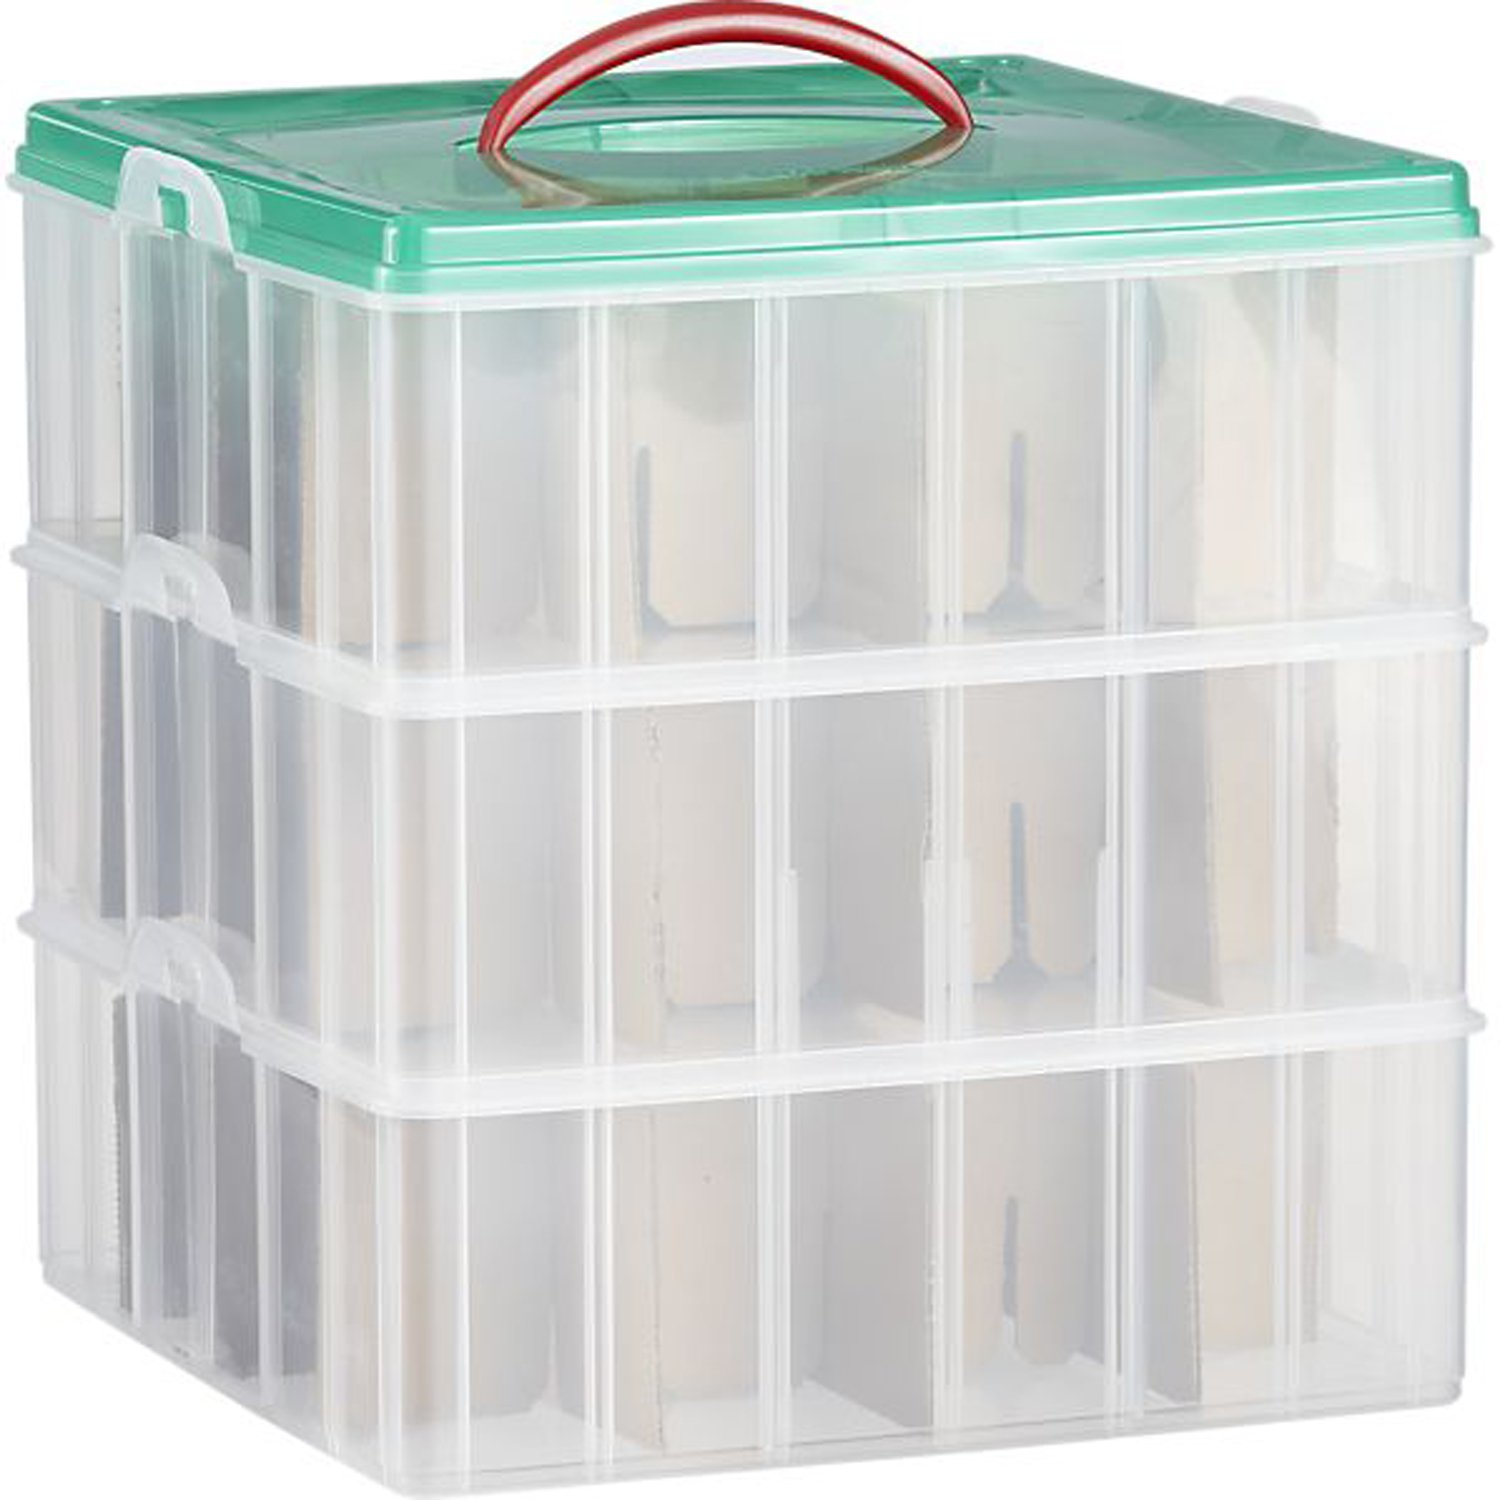 Snapware / Paksh Christmas Plastic Ornament Storage Container | Lausks.com